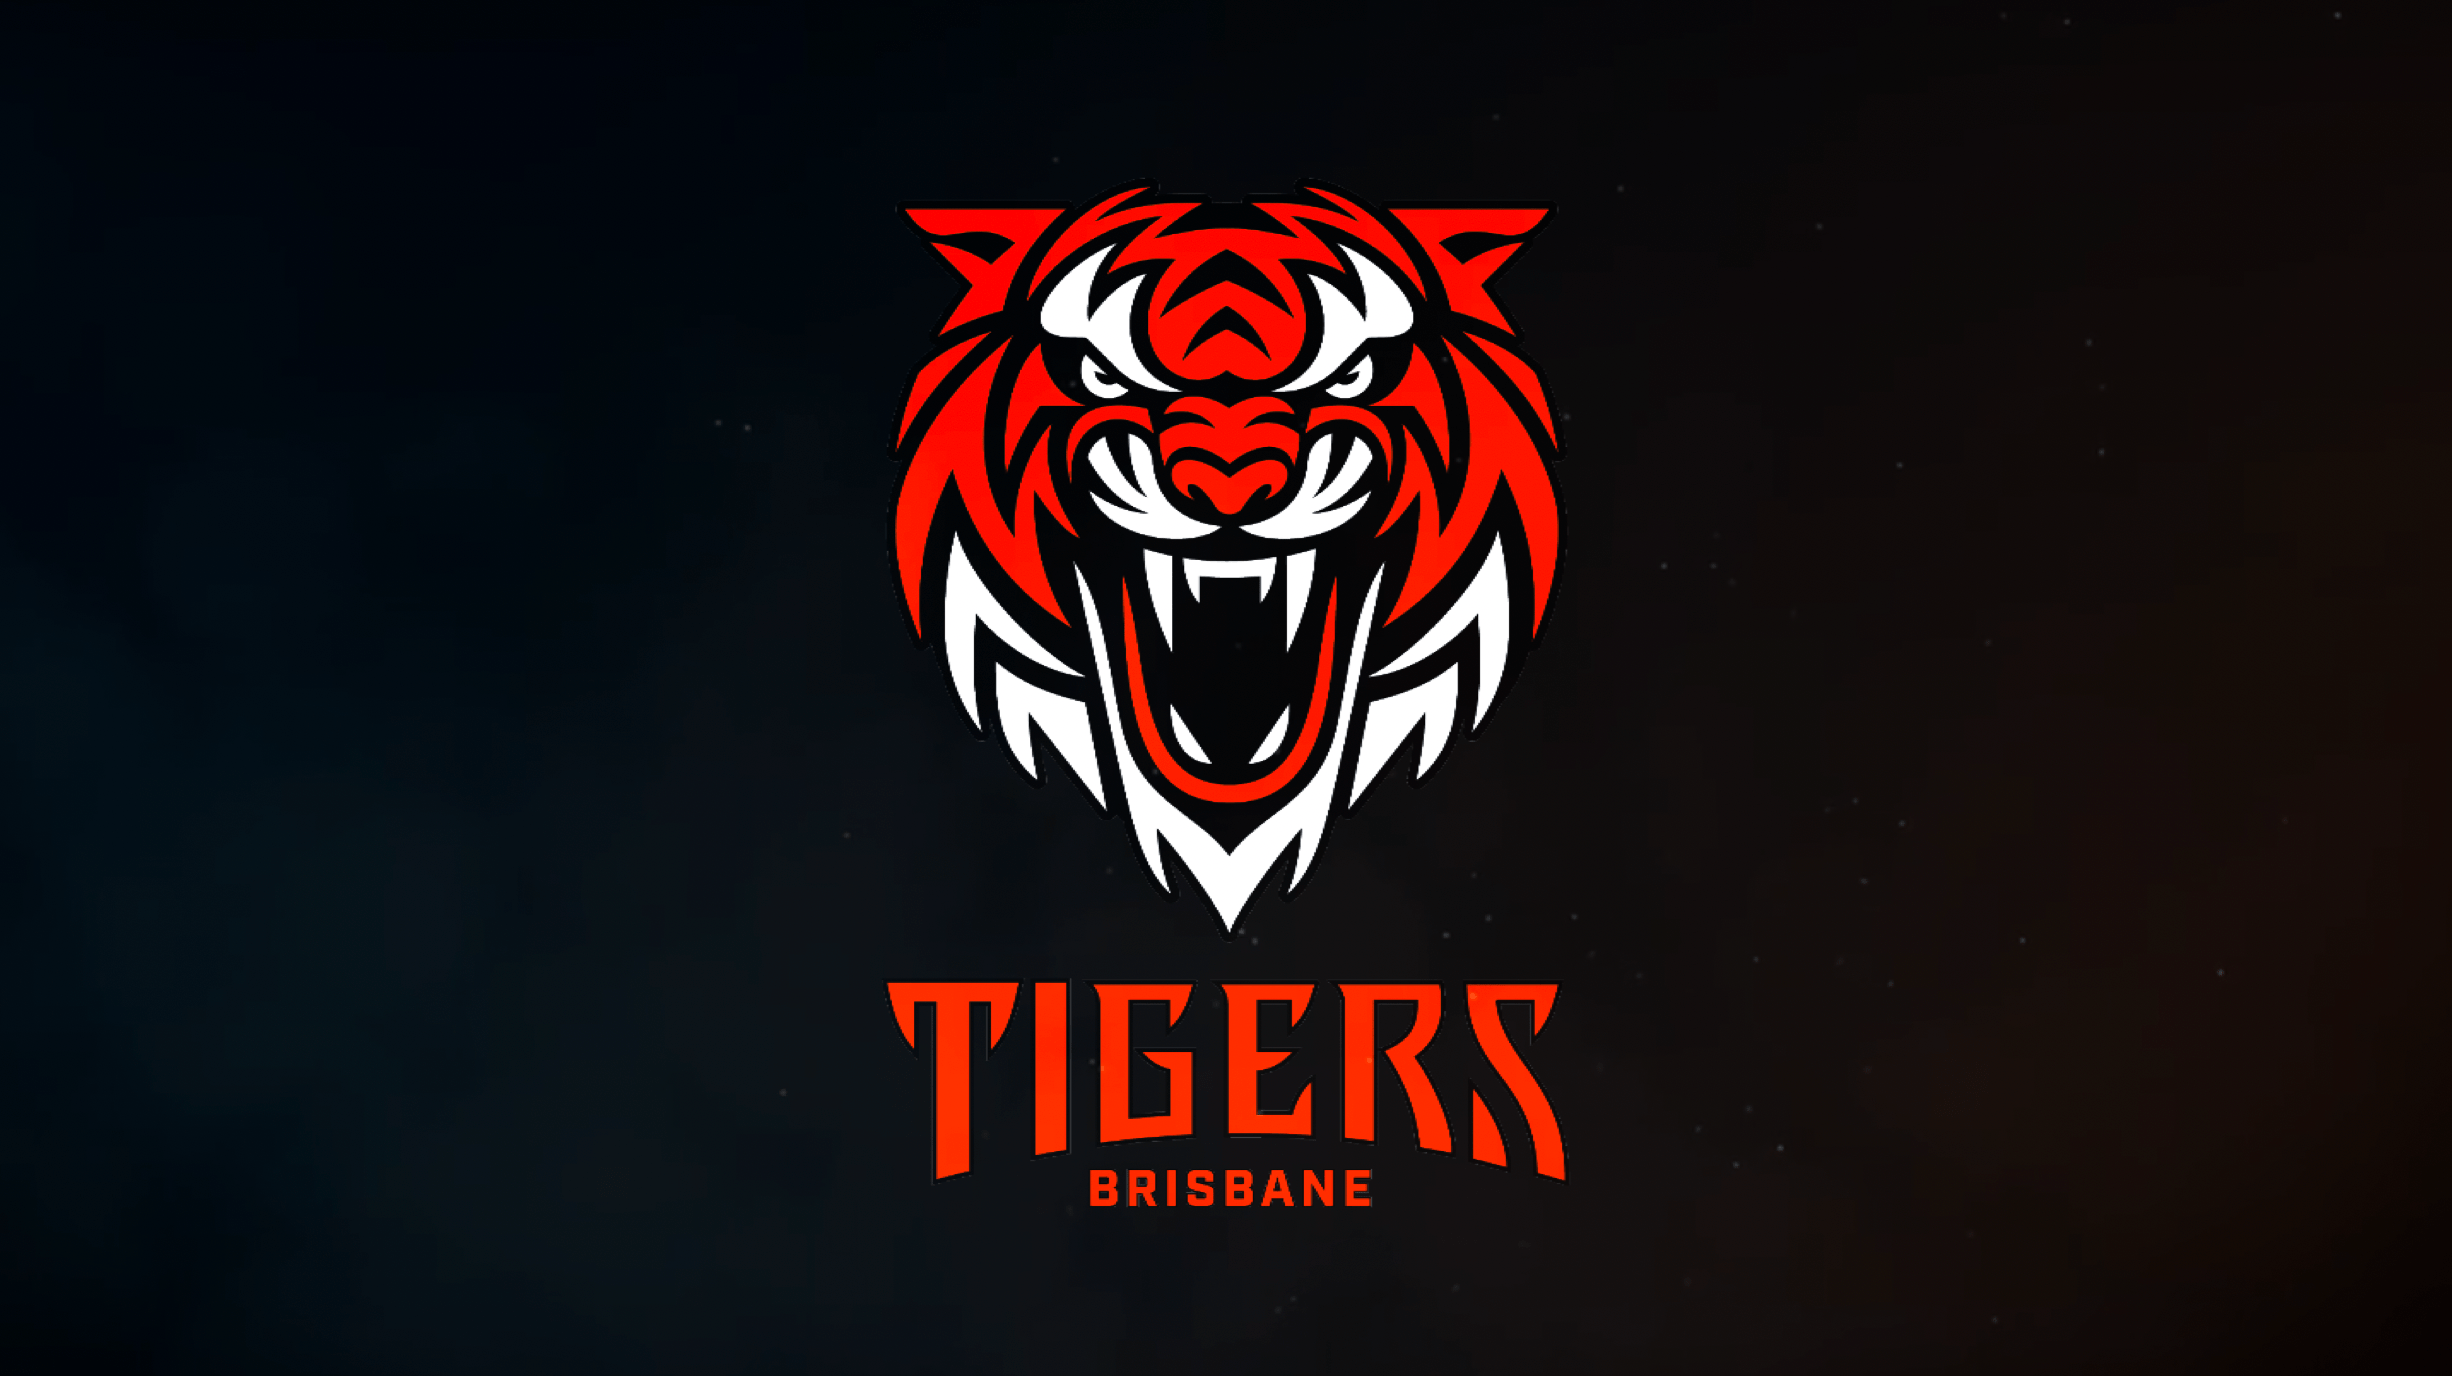 Brisbane Tigers Brand Reveal